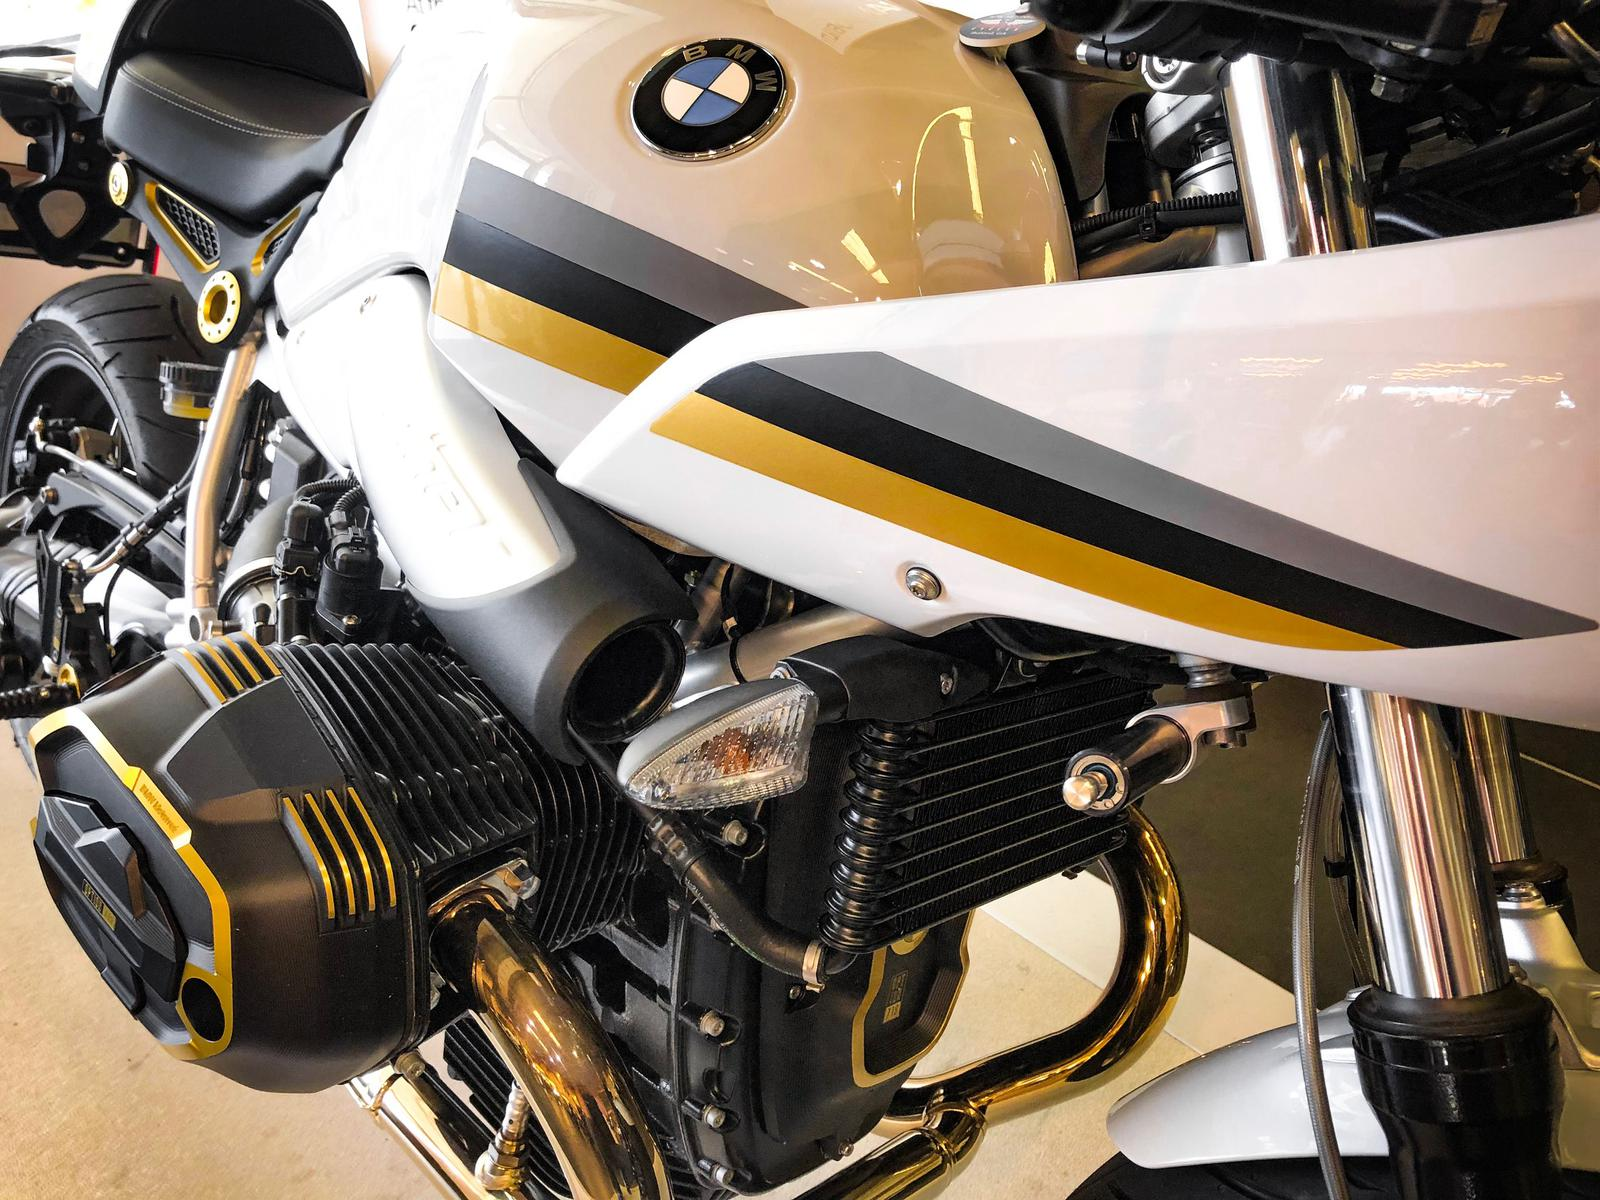 2018 Bmw R Ninet Racer For Sale In Buford Ga Hourglass Cycles